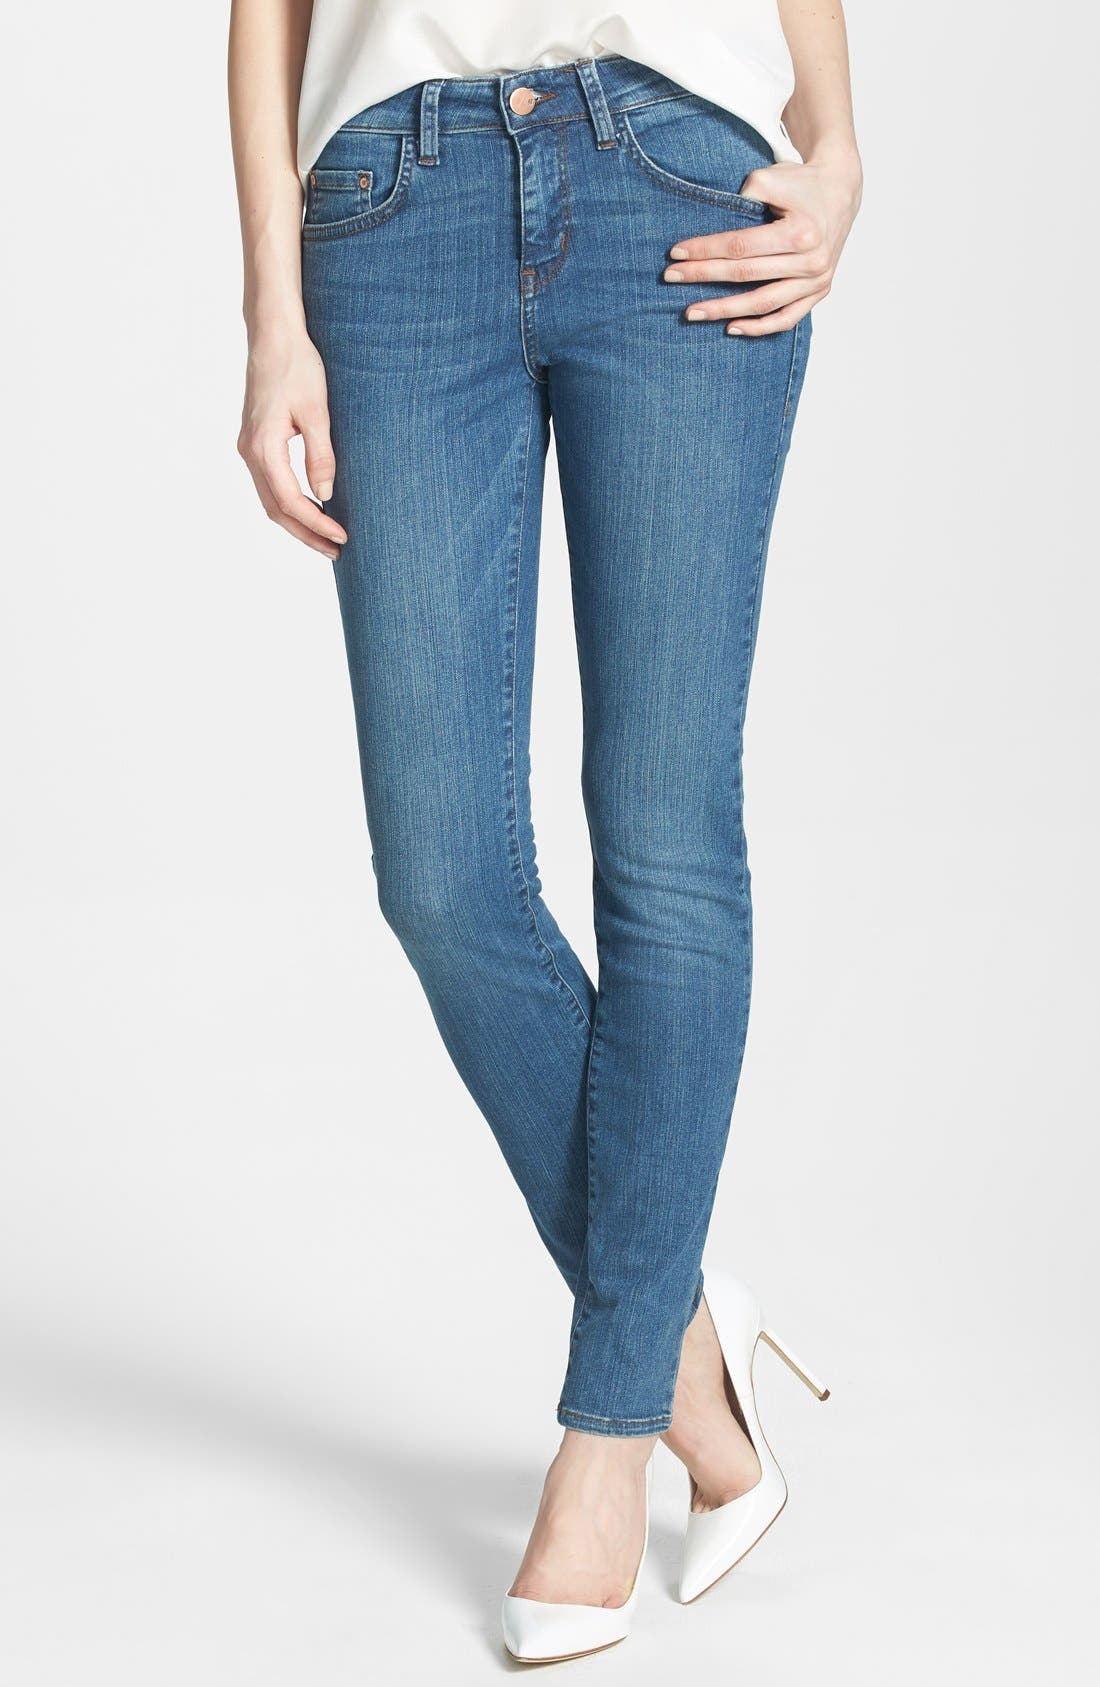 Alternate Image 1 Selected - !iT Collective 'Lauren' Stretch Skinny Jeans (Solstice)